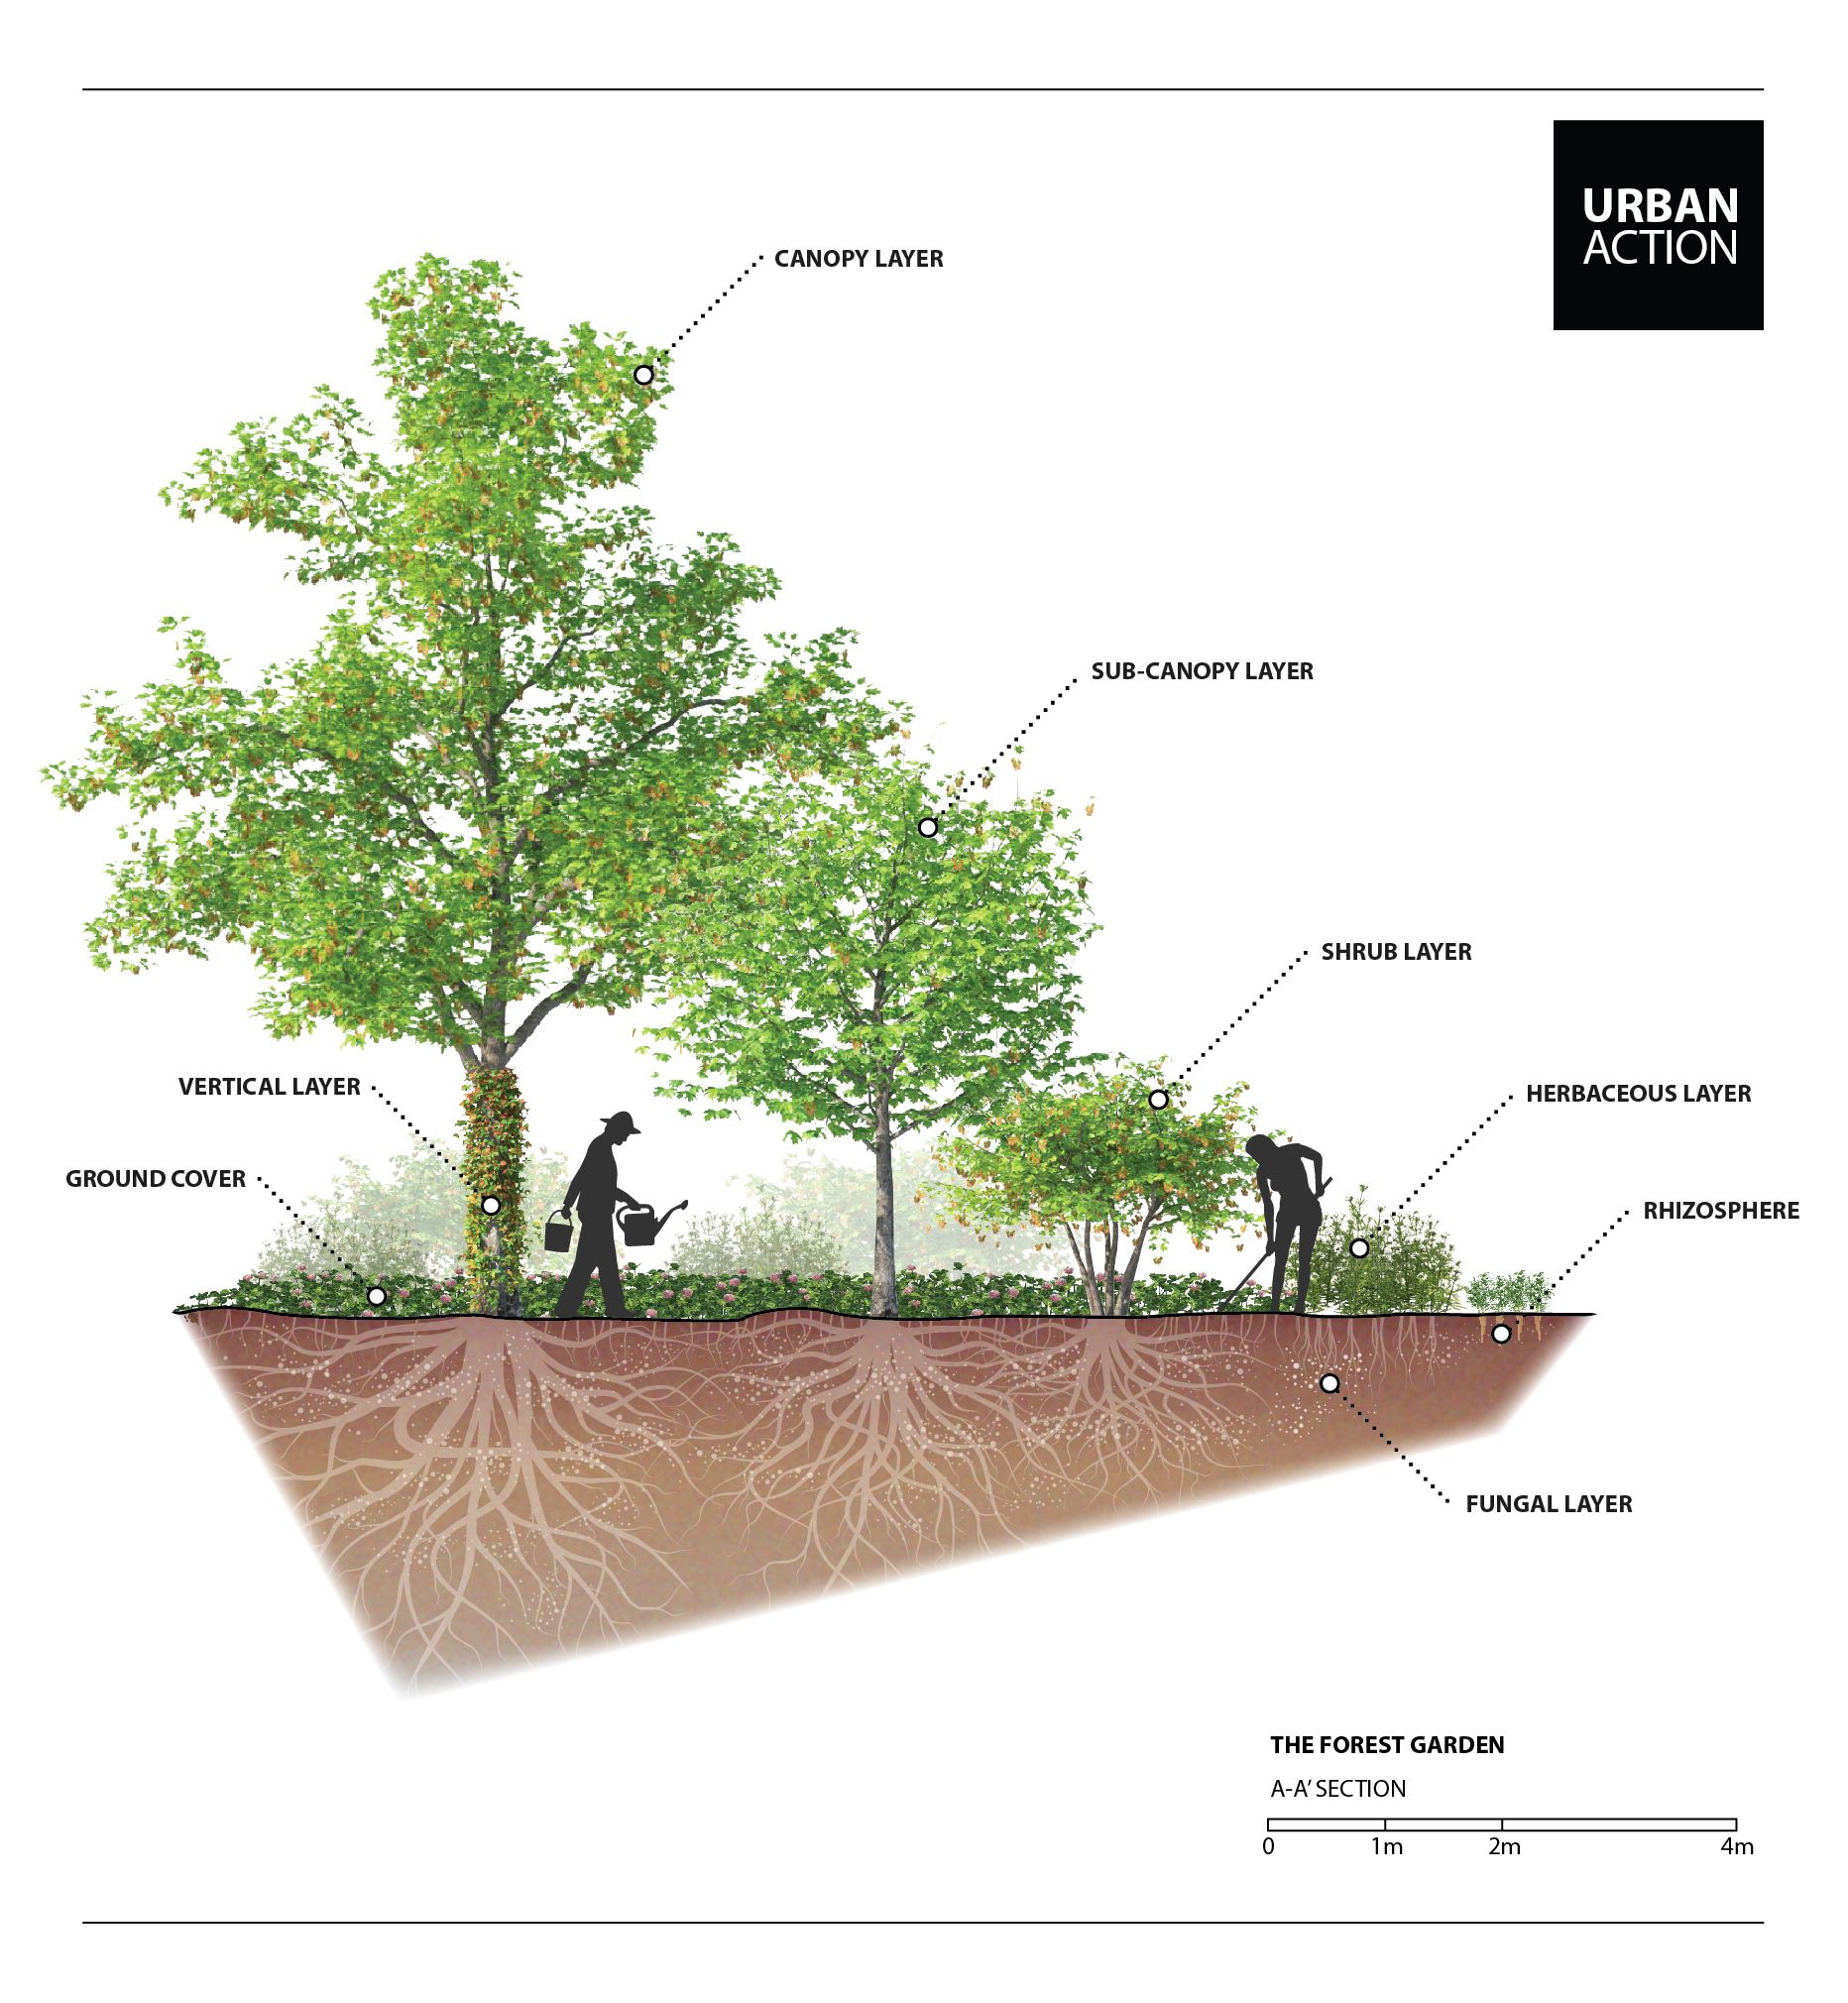 Permaculture Forest Garden Design By Urban Action